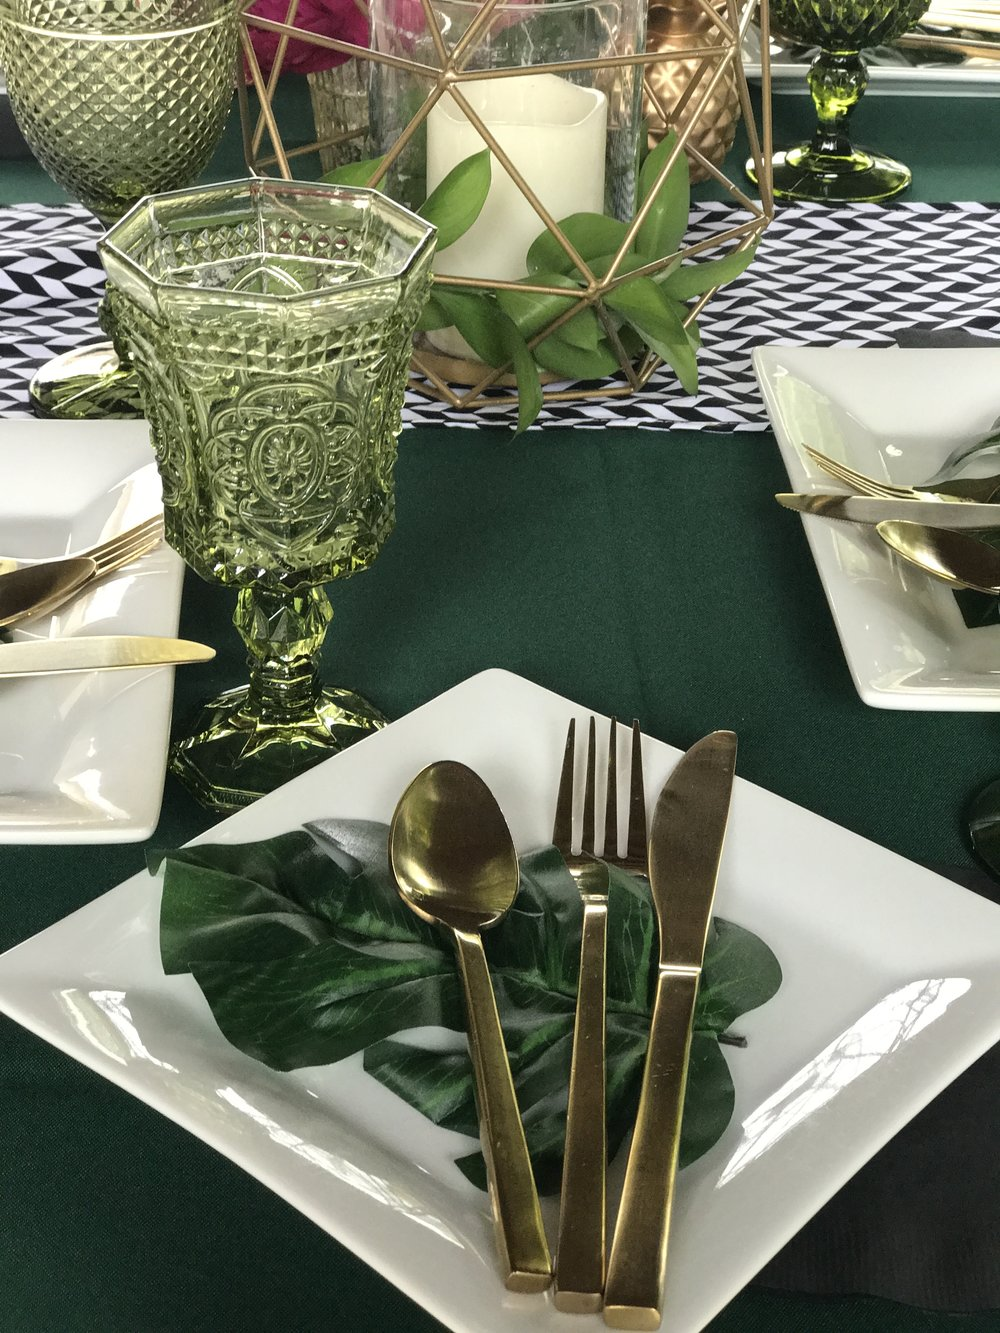 The variety of green goblets and gold flatware were provided by  Party Pleasers  in Camarillo. All other items were provided by Down Emery Lane.